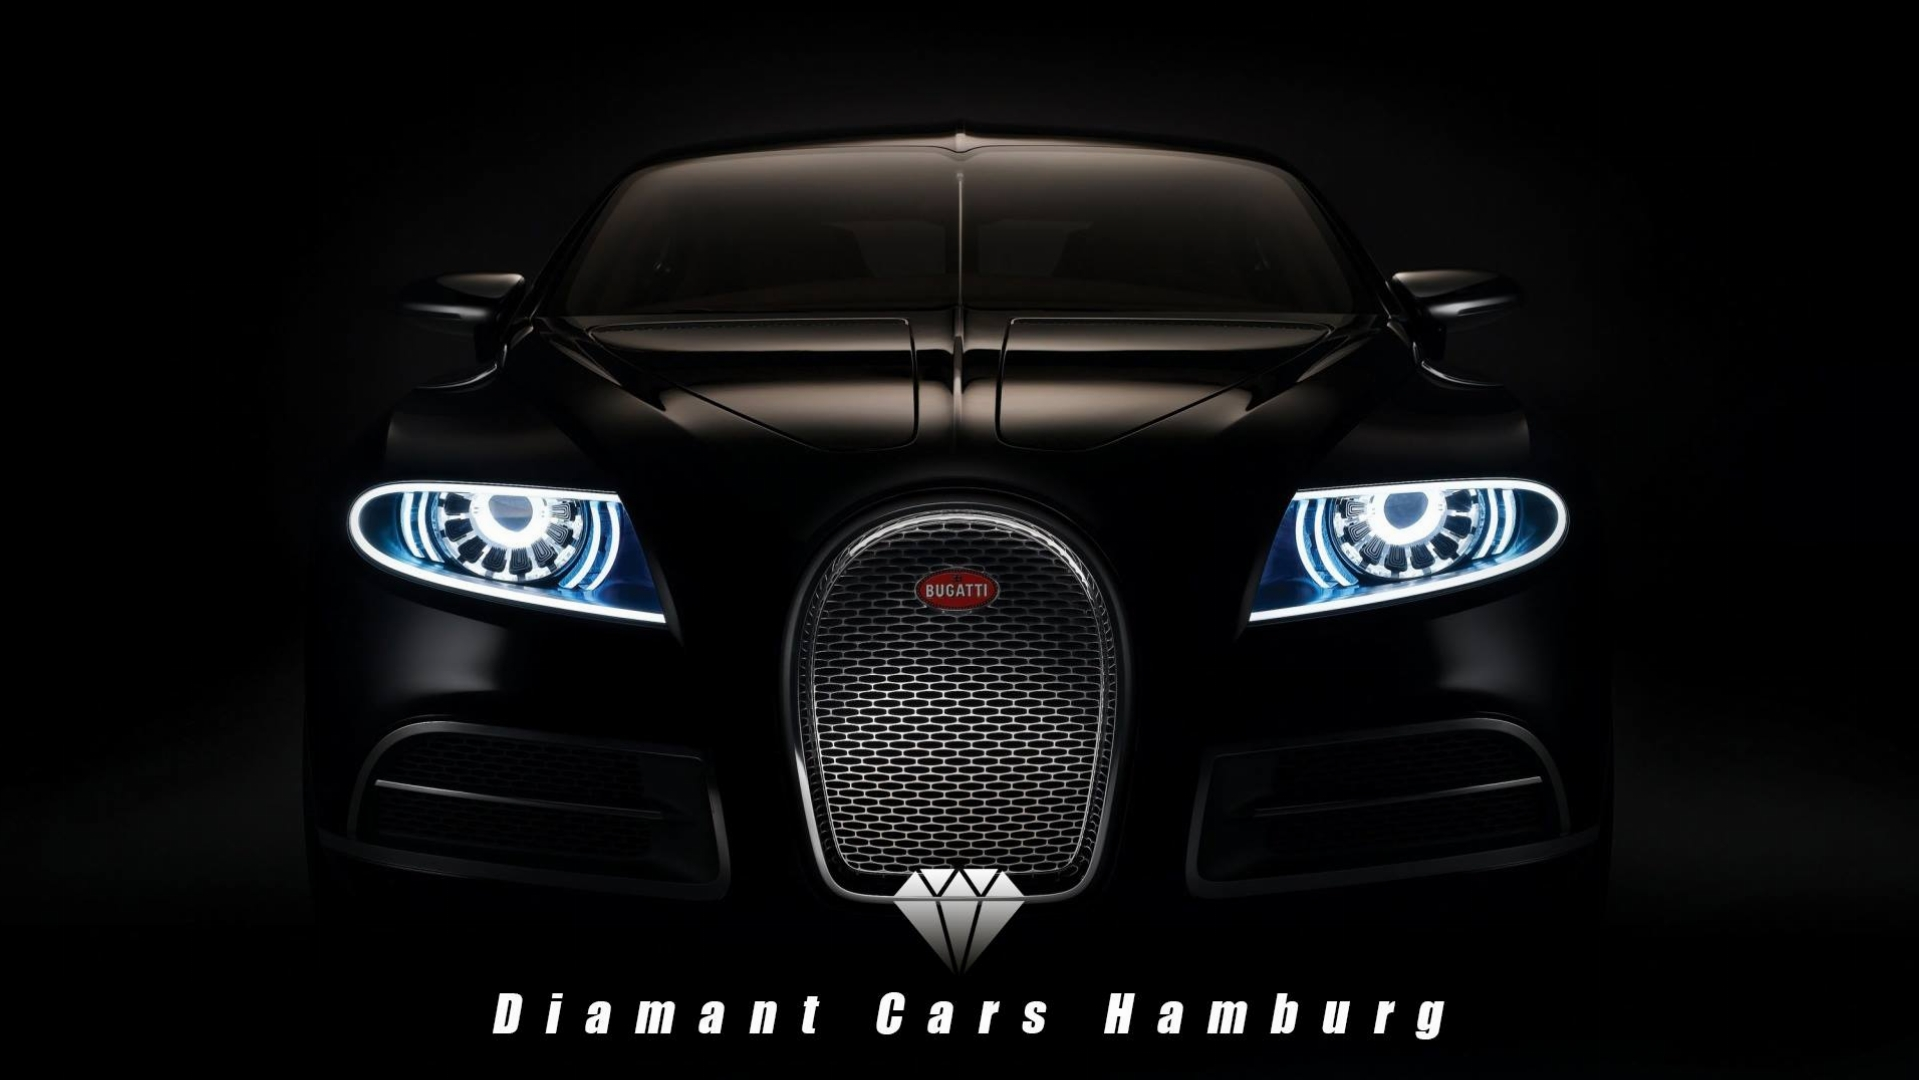 https://www.facebook.com/Diamant-Cars-Hamburg-939261856131482/